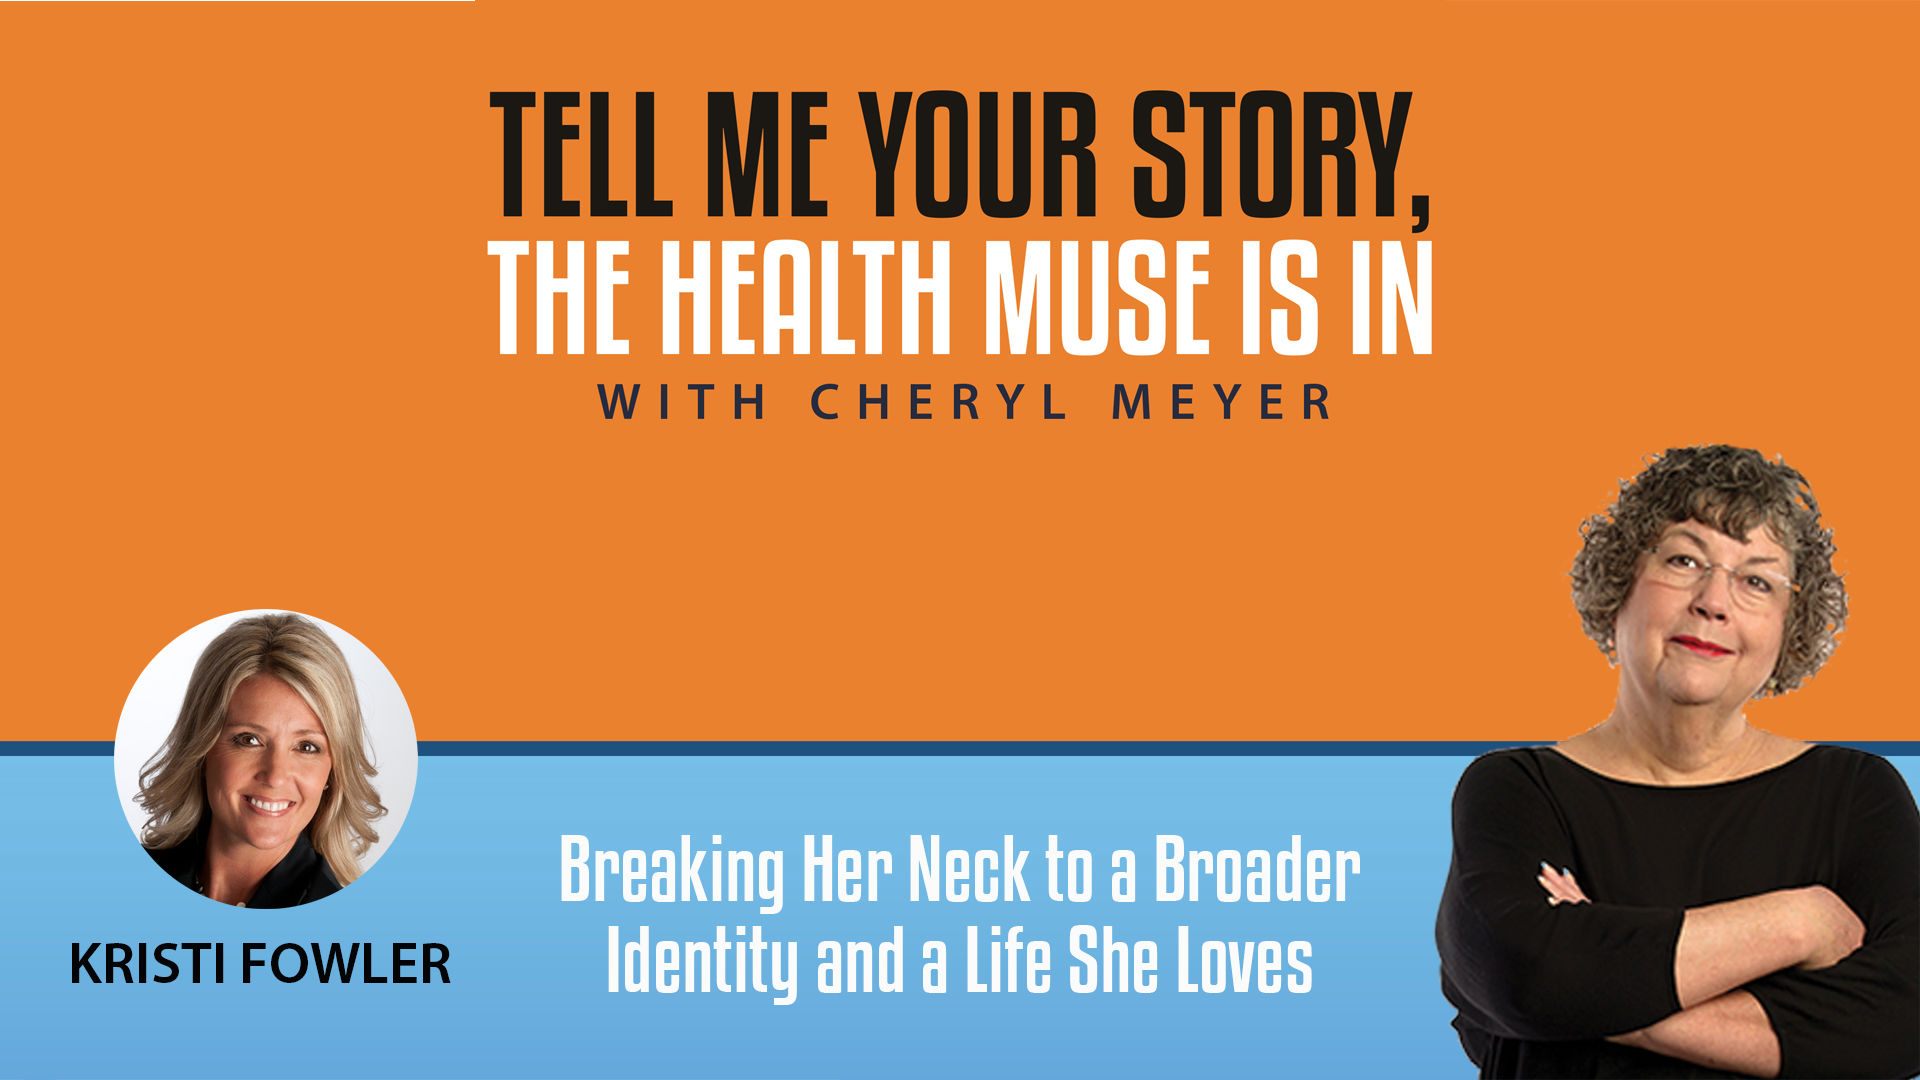 Tells Me Your Story- Kristi Fowler Breaking her neck to a larger identity and a life she loves